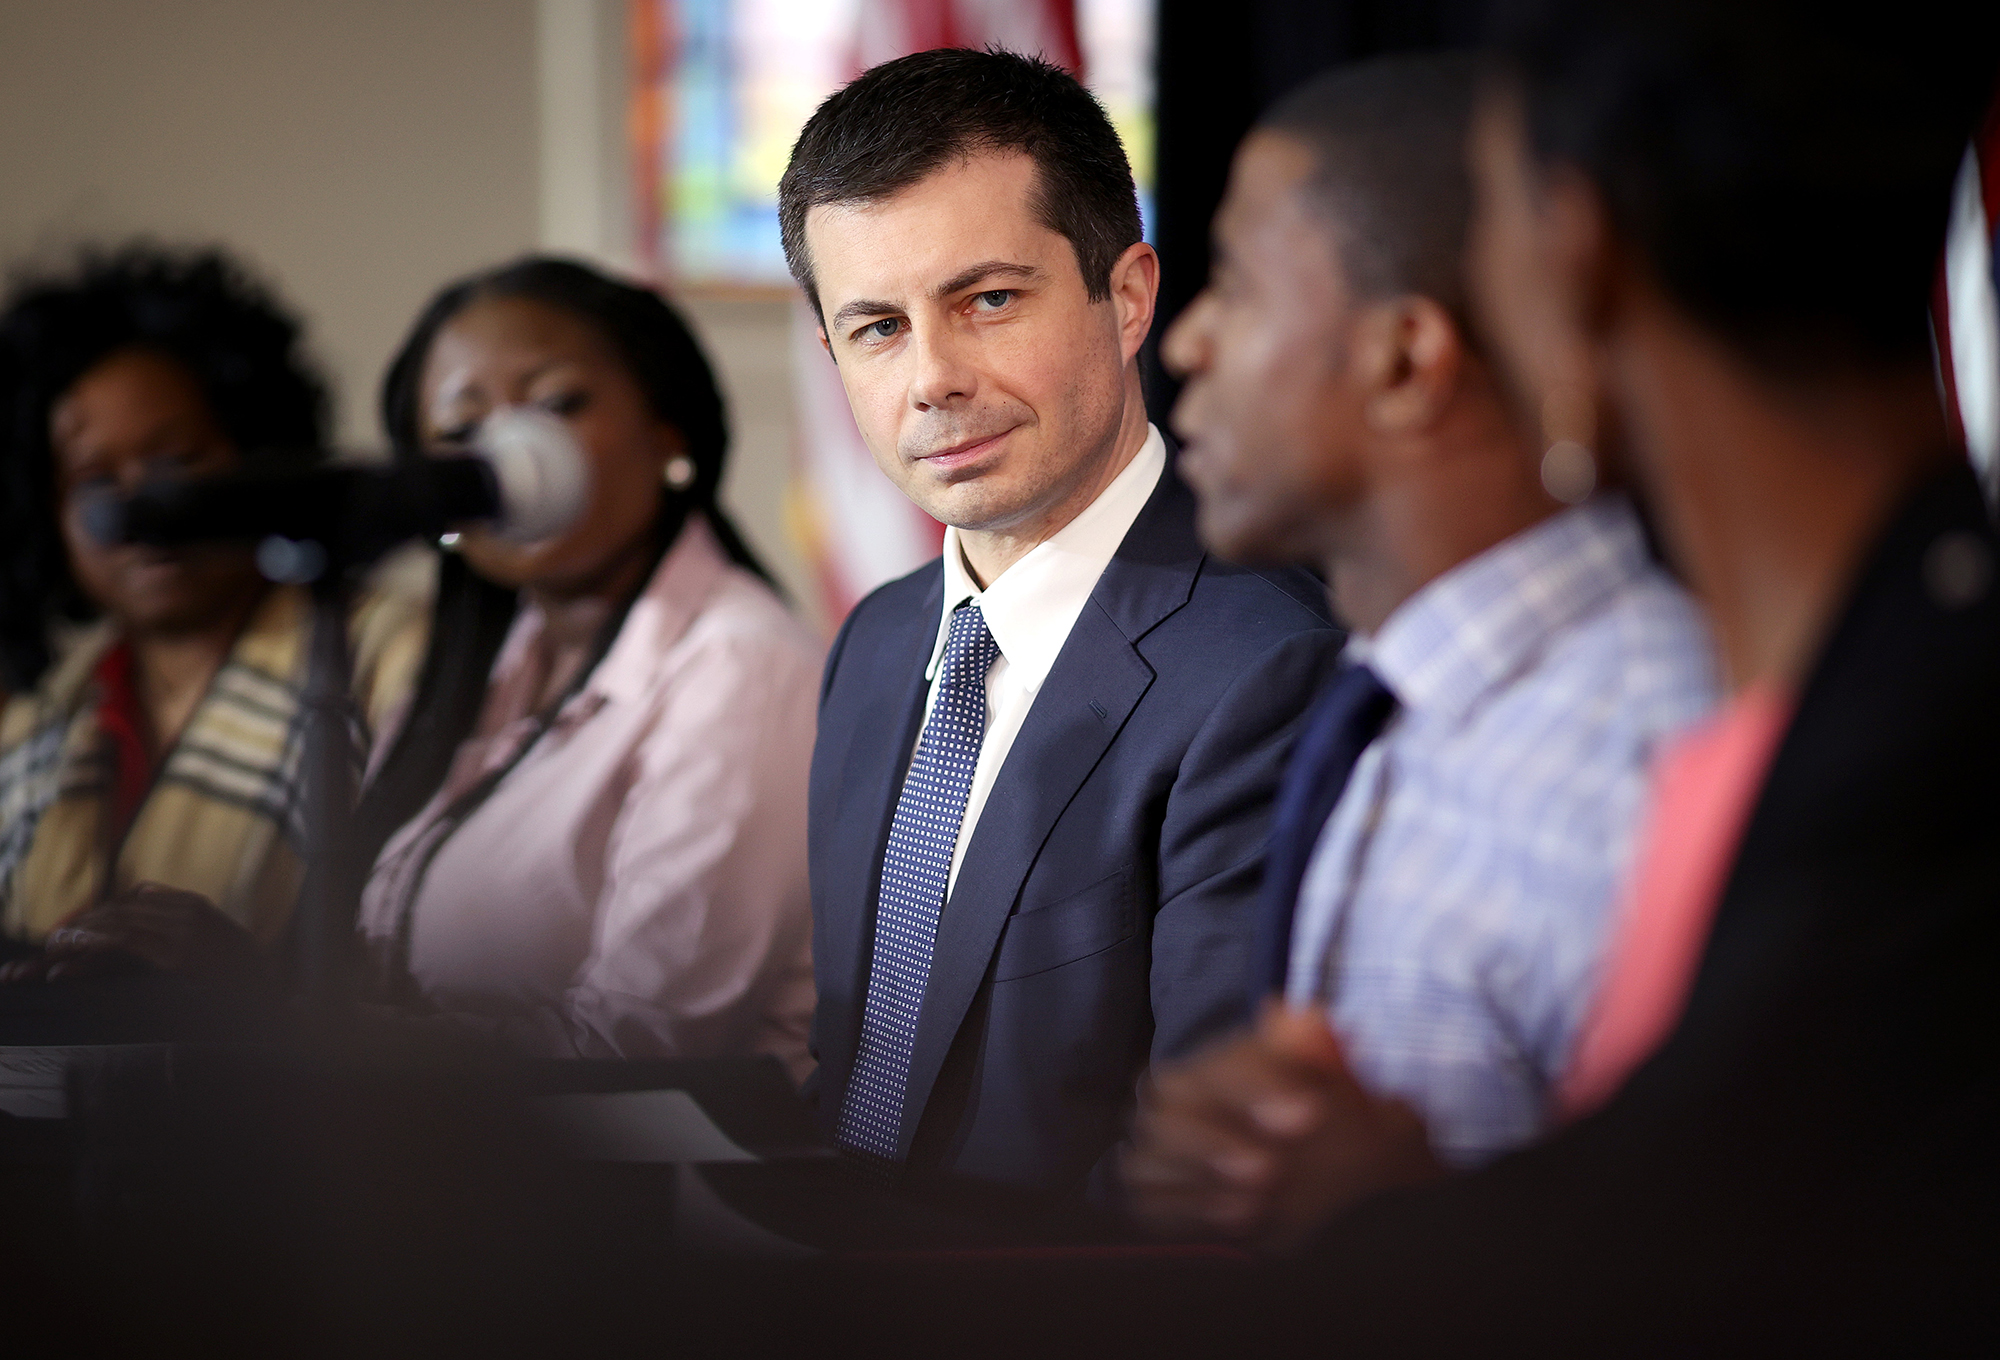 Democratic presidential candidate former South Bend, Indiana Mayor Pete Buttigieg participates in a Health Equity Roundtable at Nicholtown Missionary Baptist Church February 27 in Greenville, South Carolina.